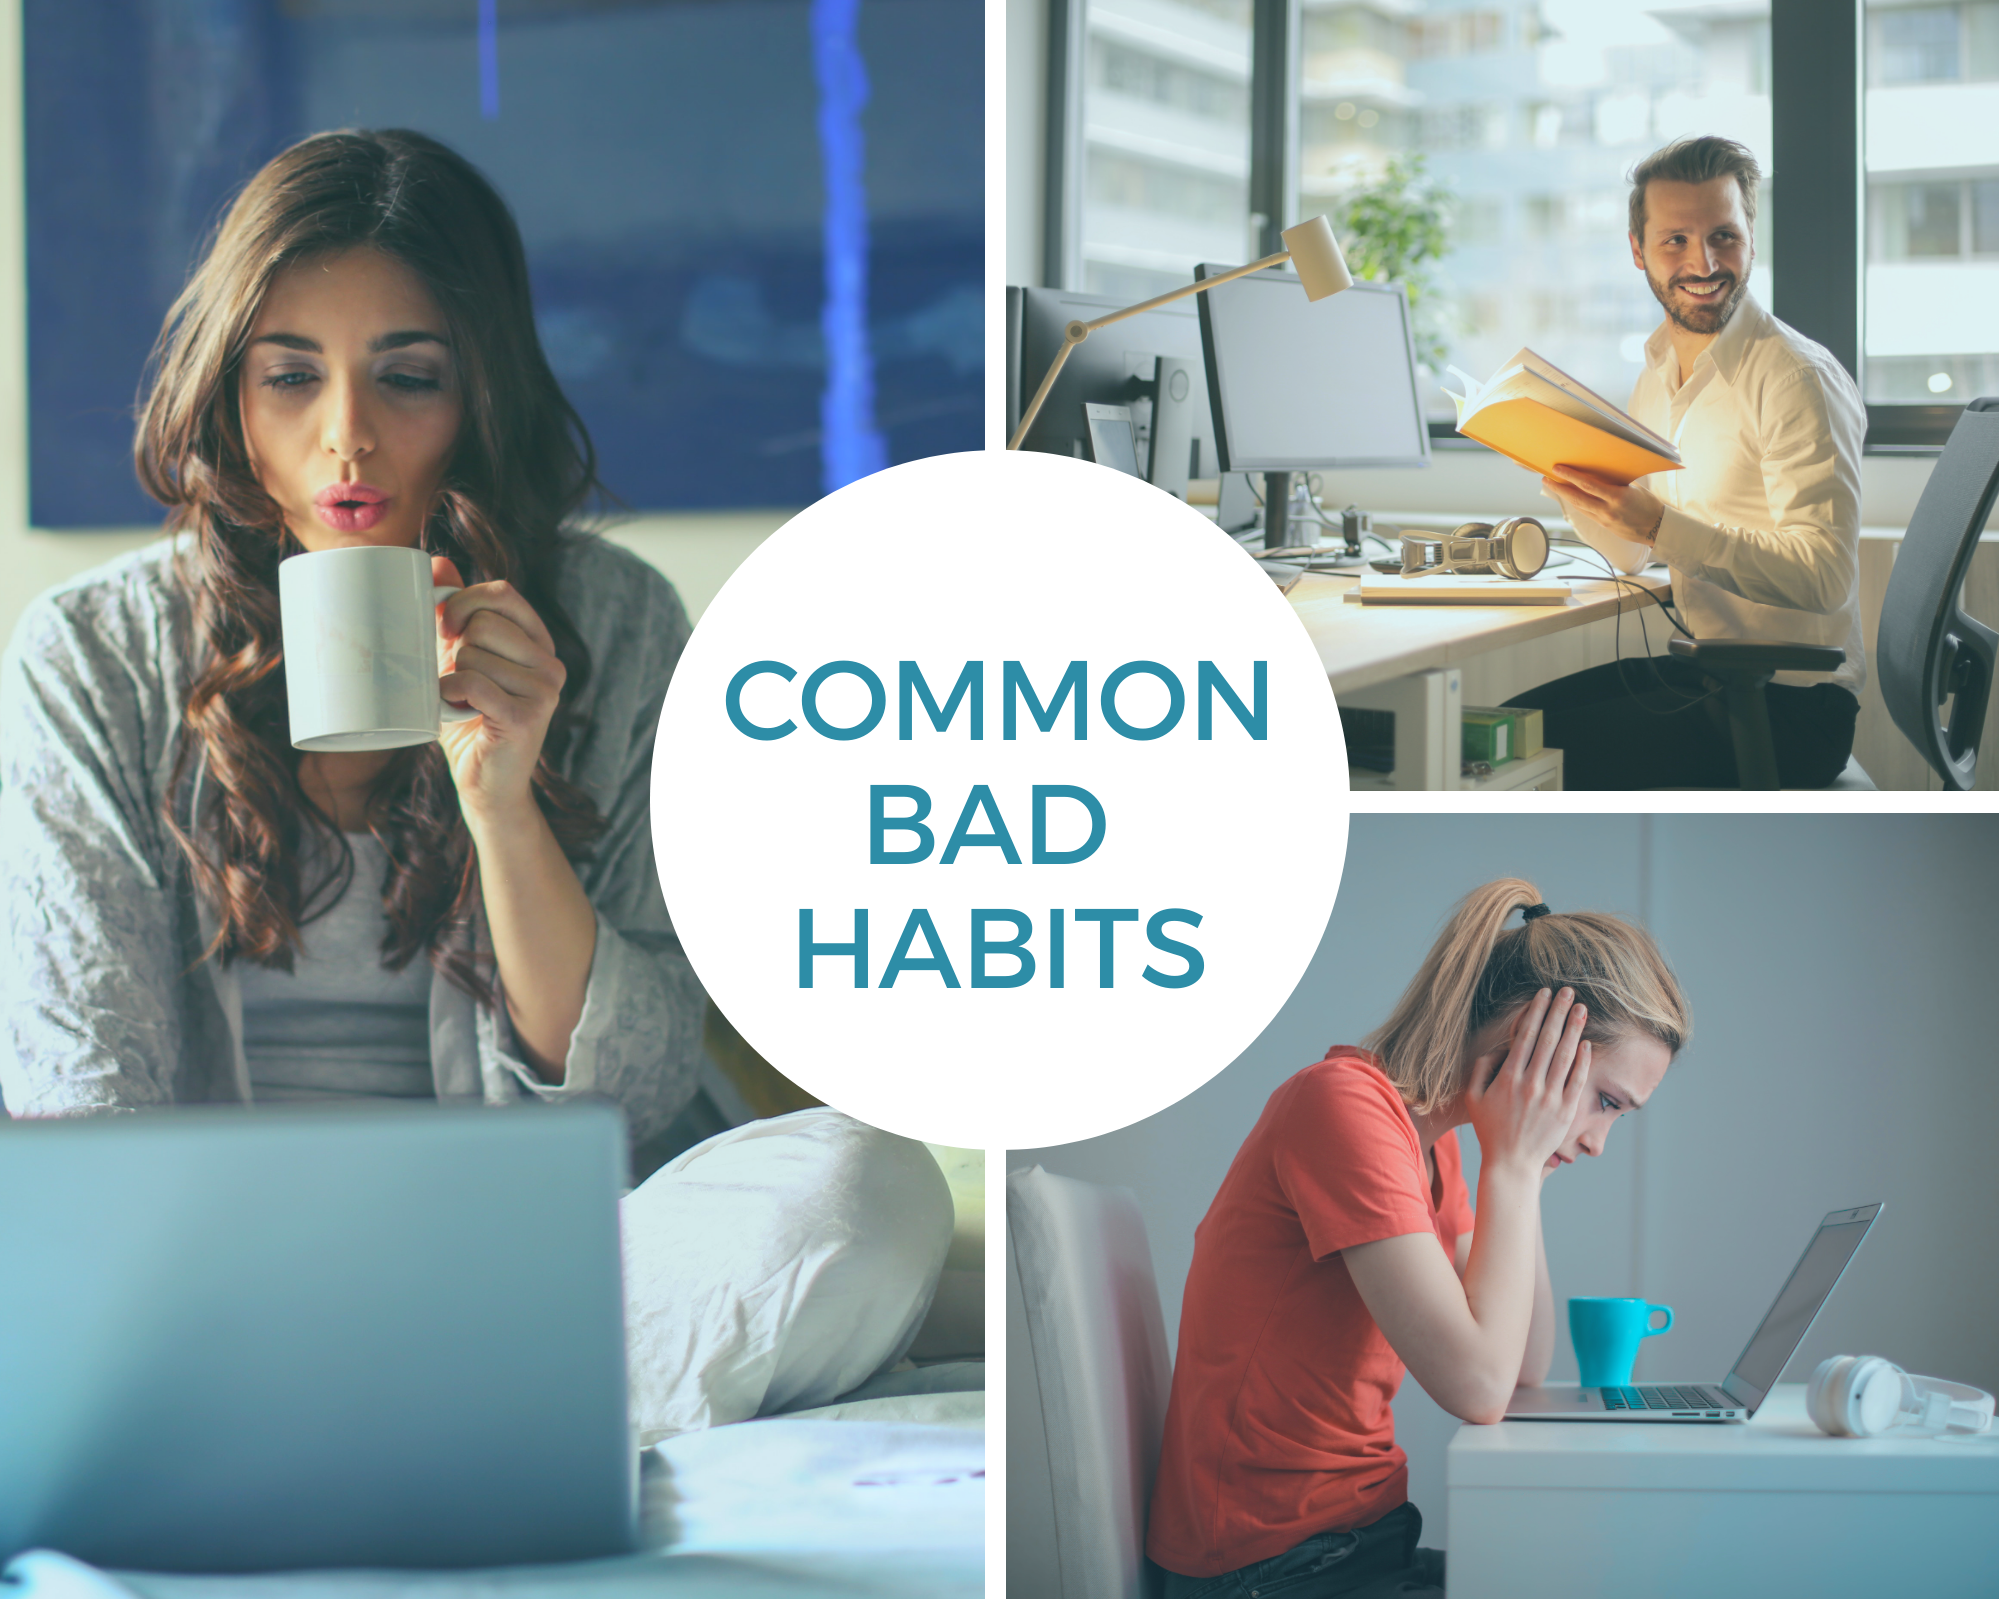 Common bad habits people have